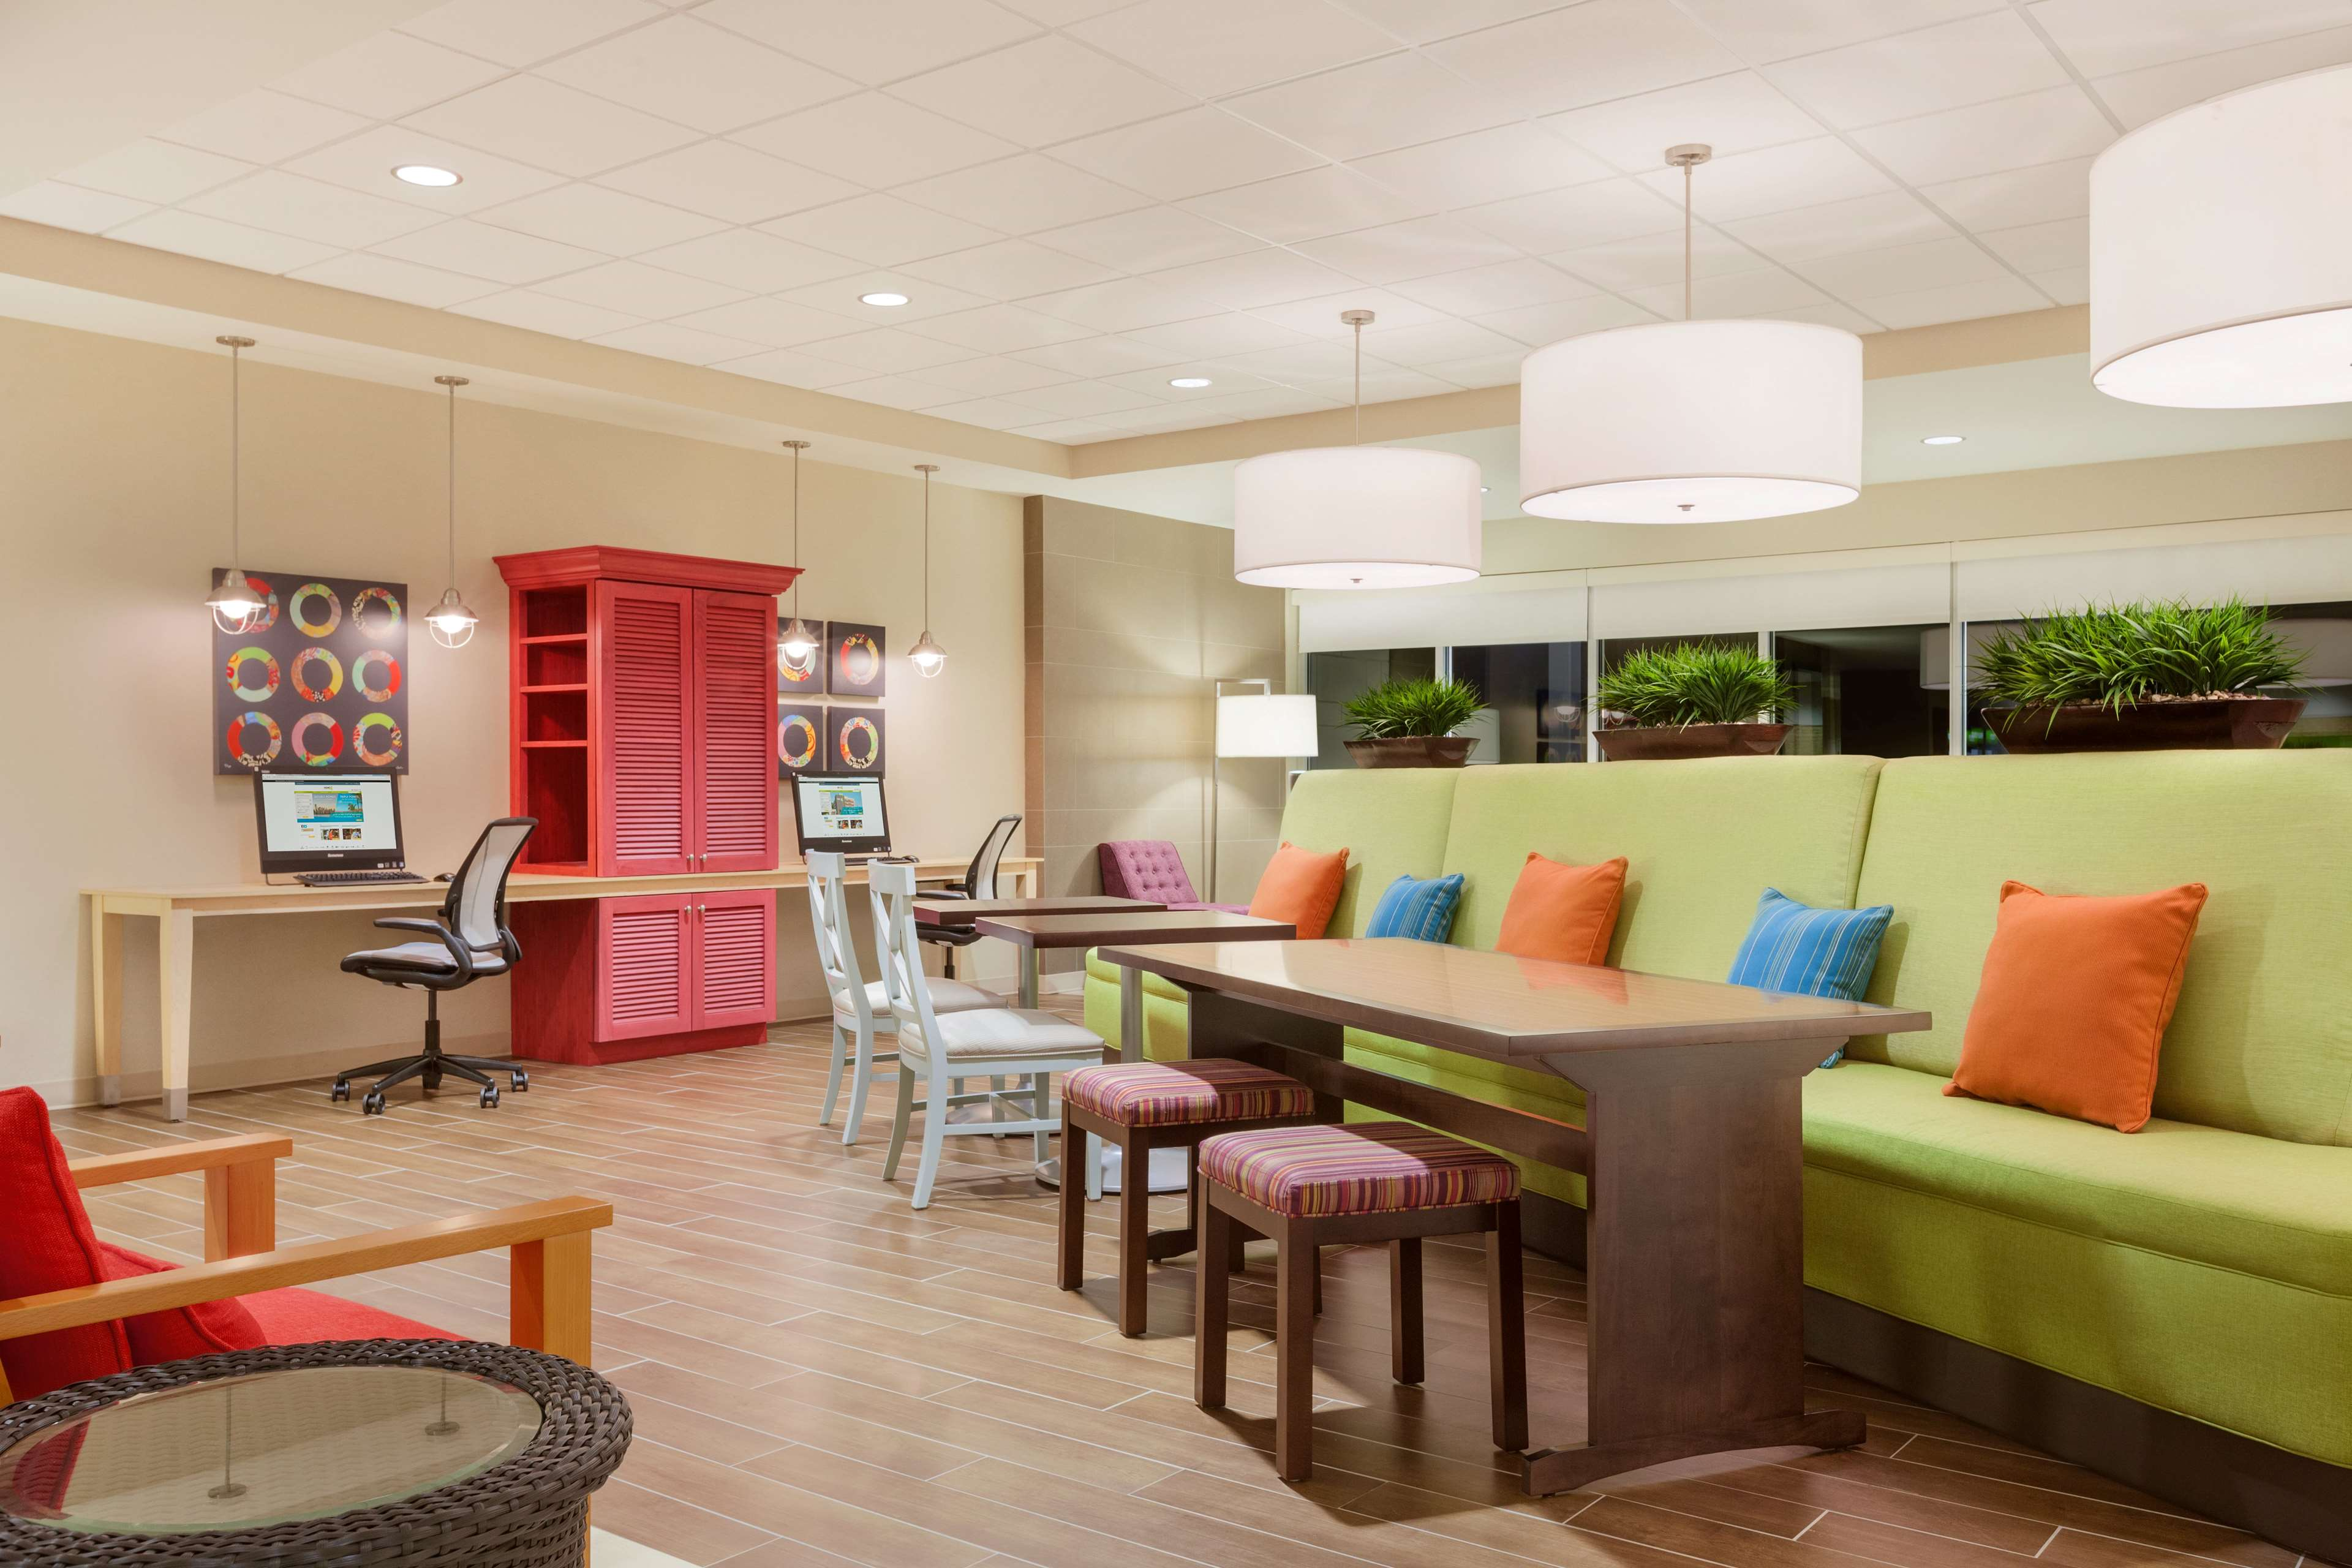 Home2 Suites By Hilton Youngstown West - Austintown image 18